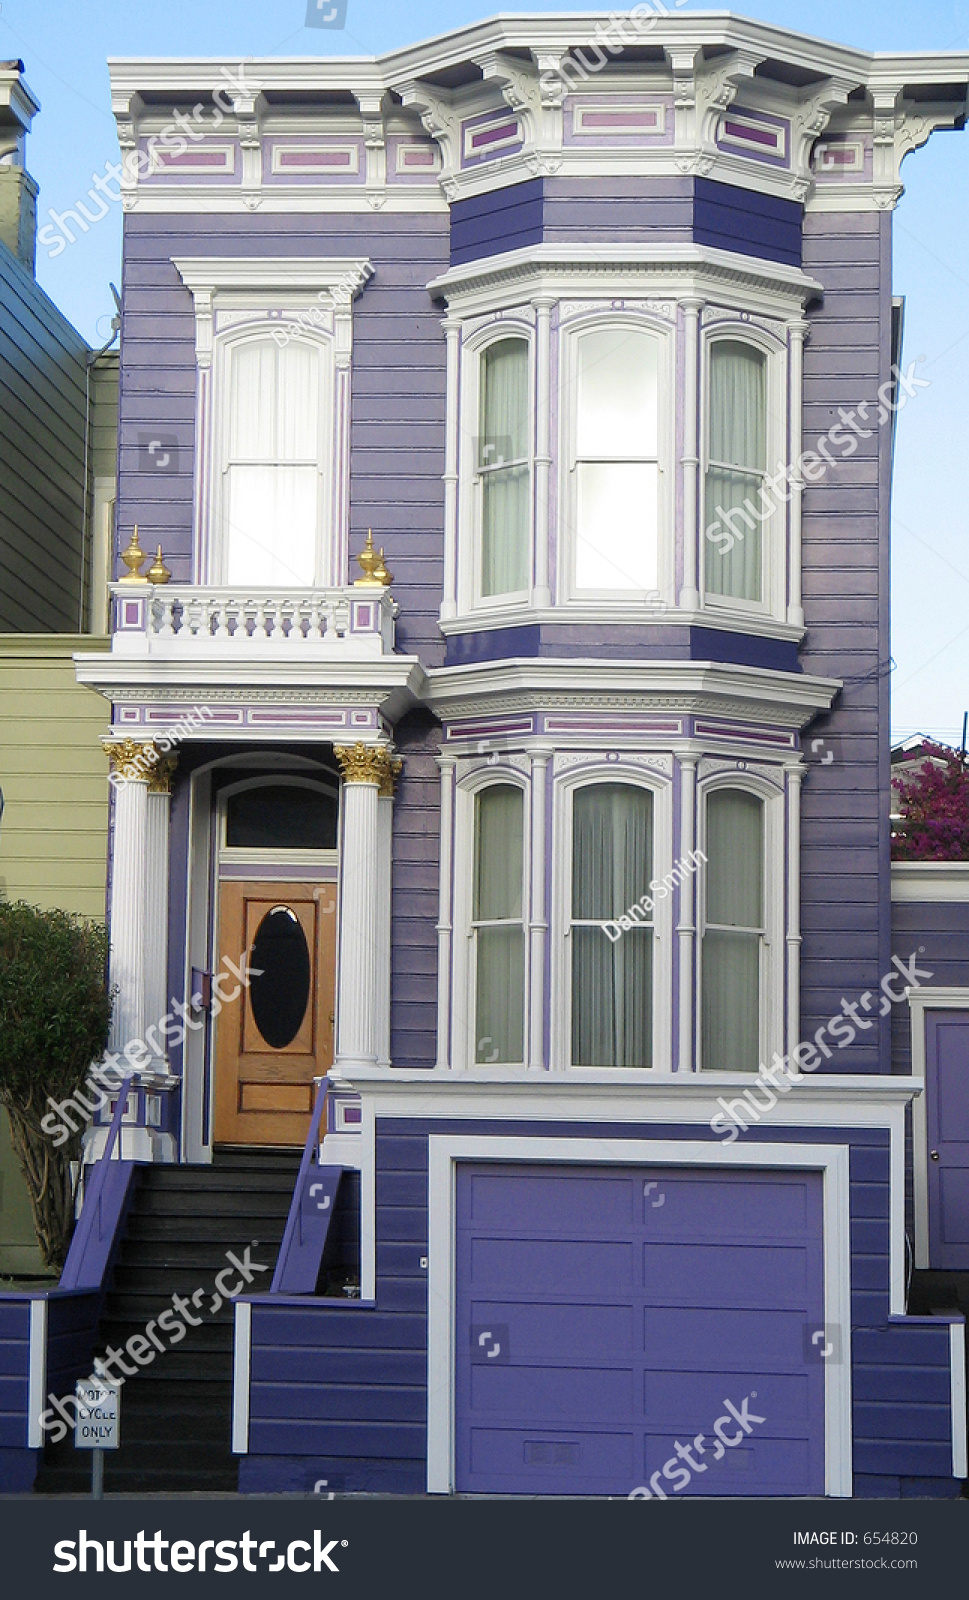 Ornate Purple Victorian House In San Francisco California Usa Stock Photo 654820 Shutterstock